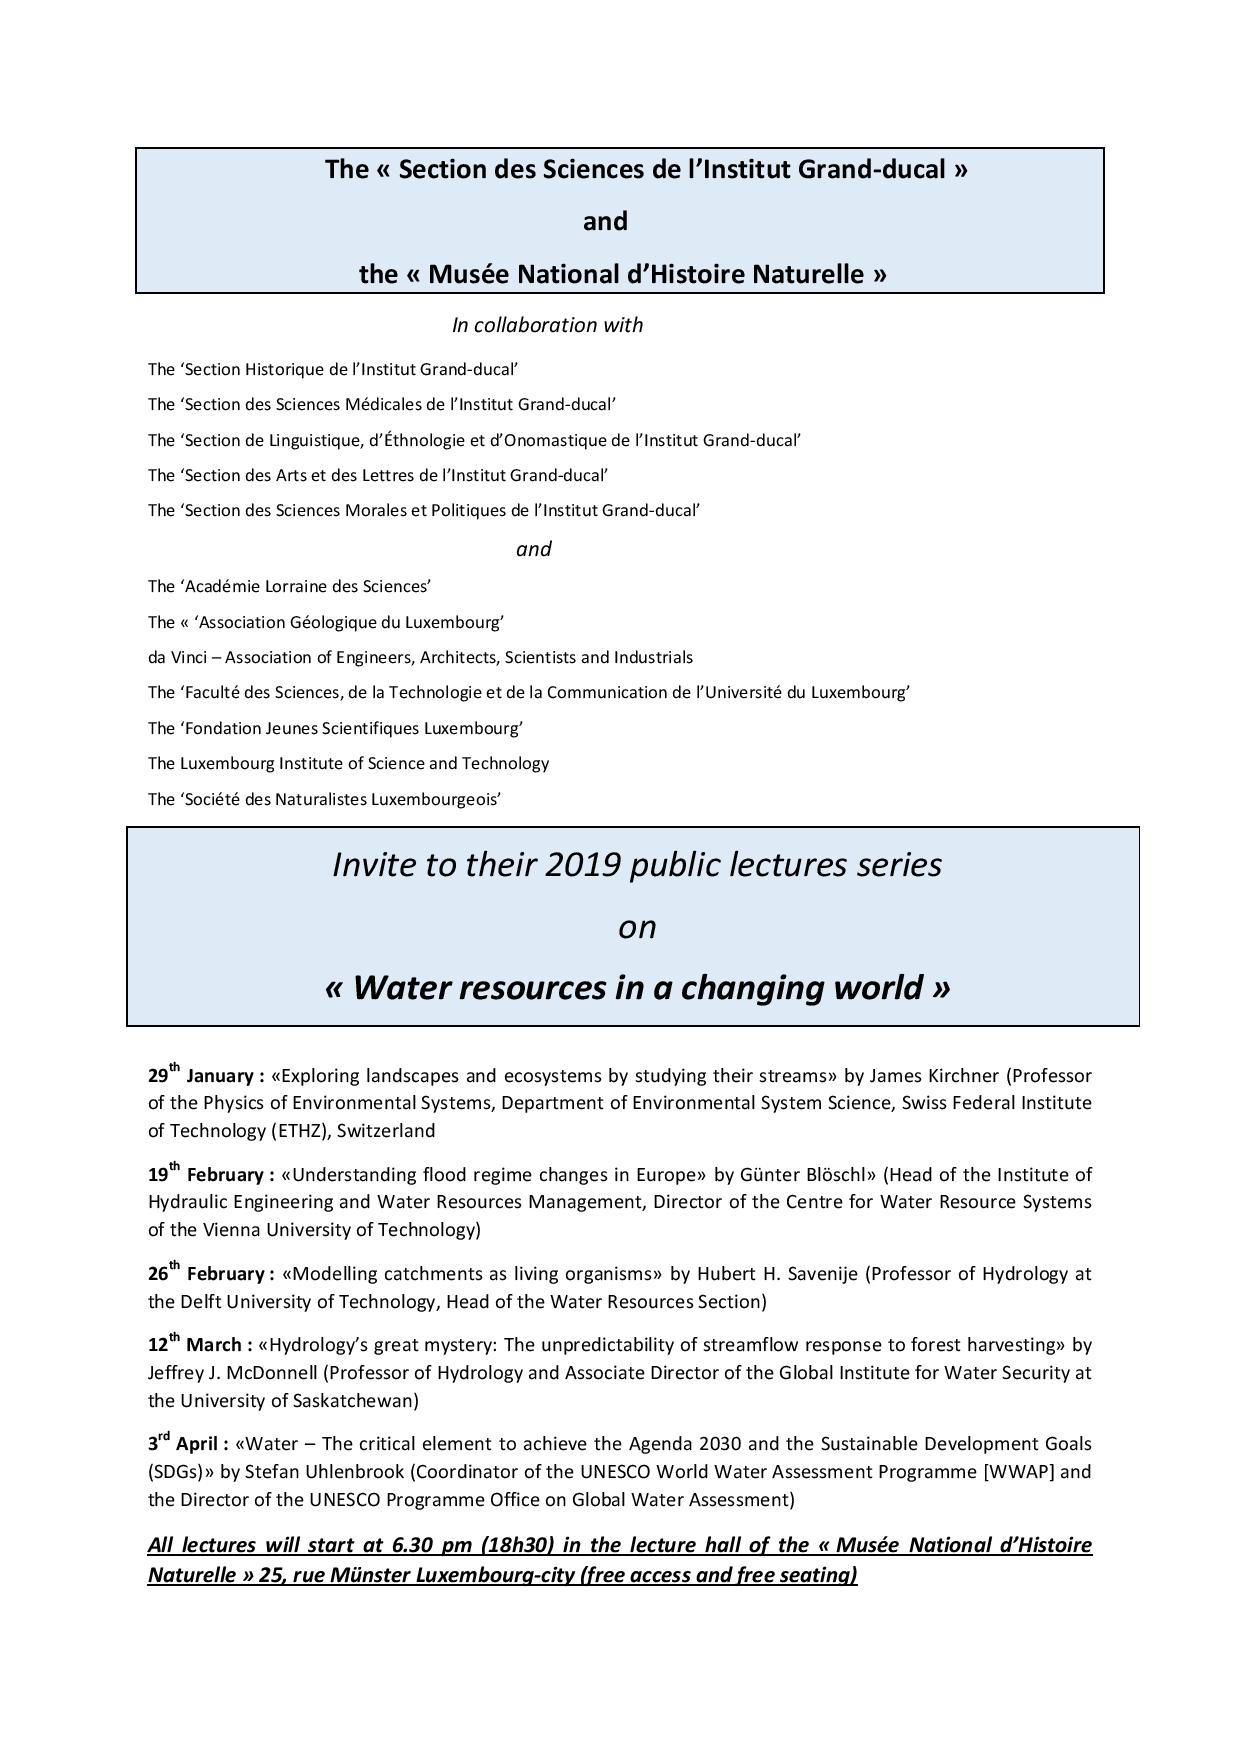 cycle de conférences Water resources in a changing world_2019_AFFICHETTE-page-001.jpg